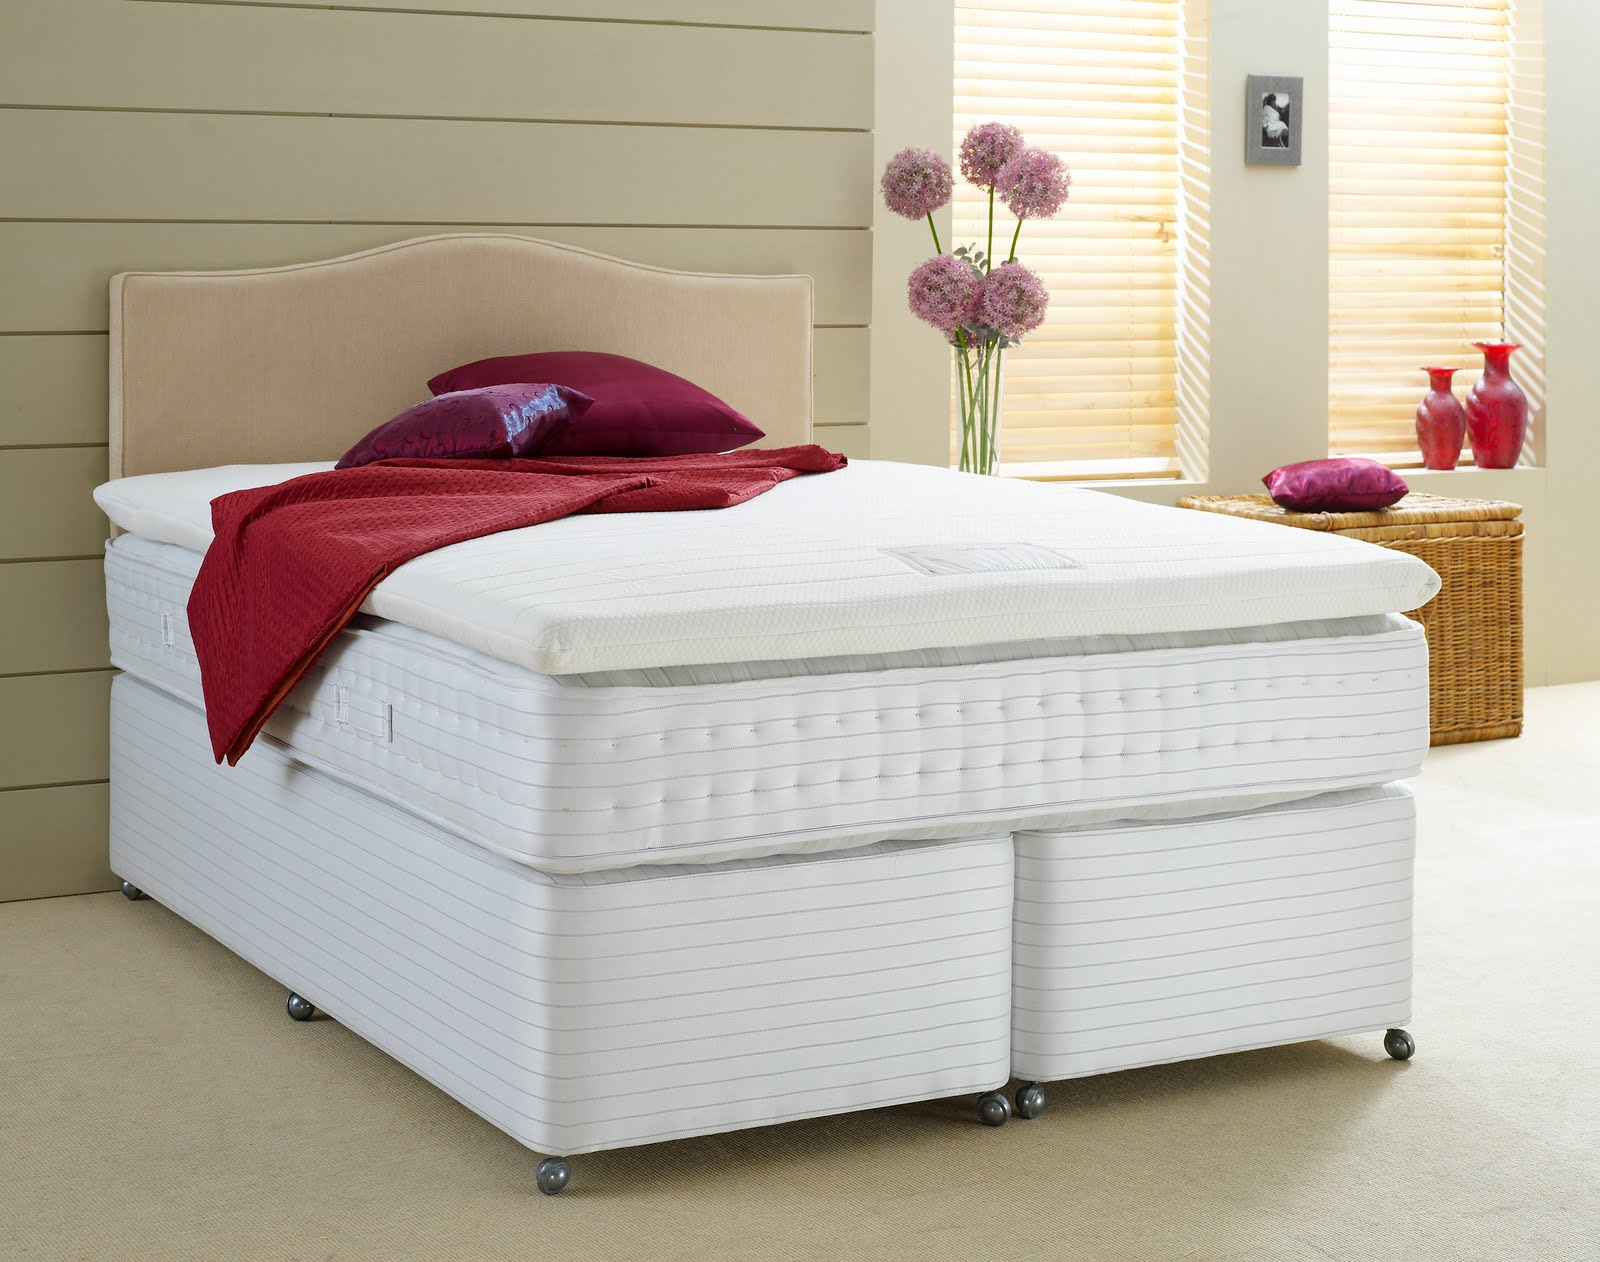 Single Mattresses Melbourne Why Do We Have To Sleep Every Single Night On Quality Mattress